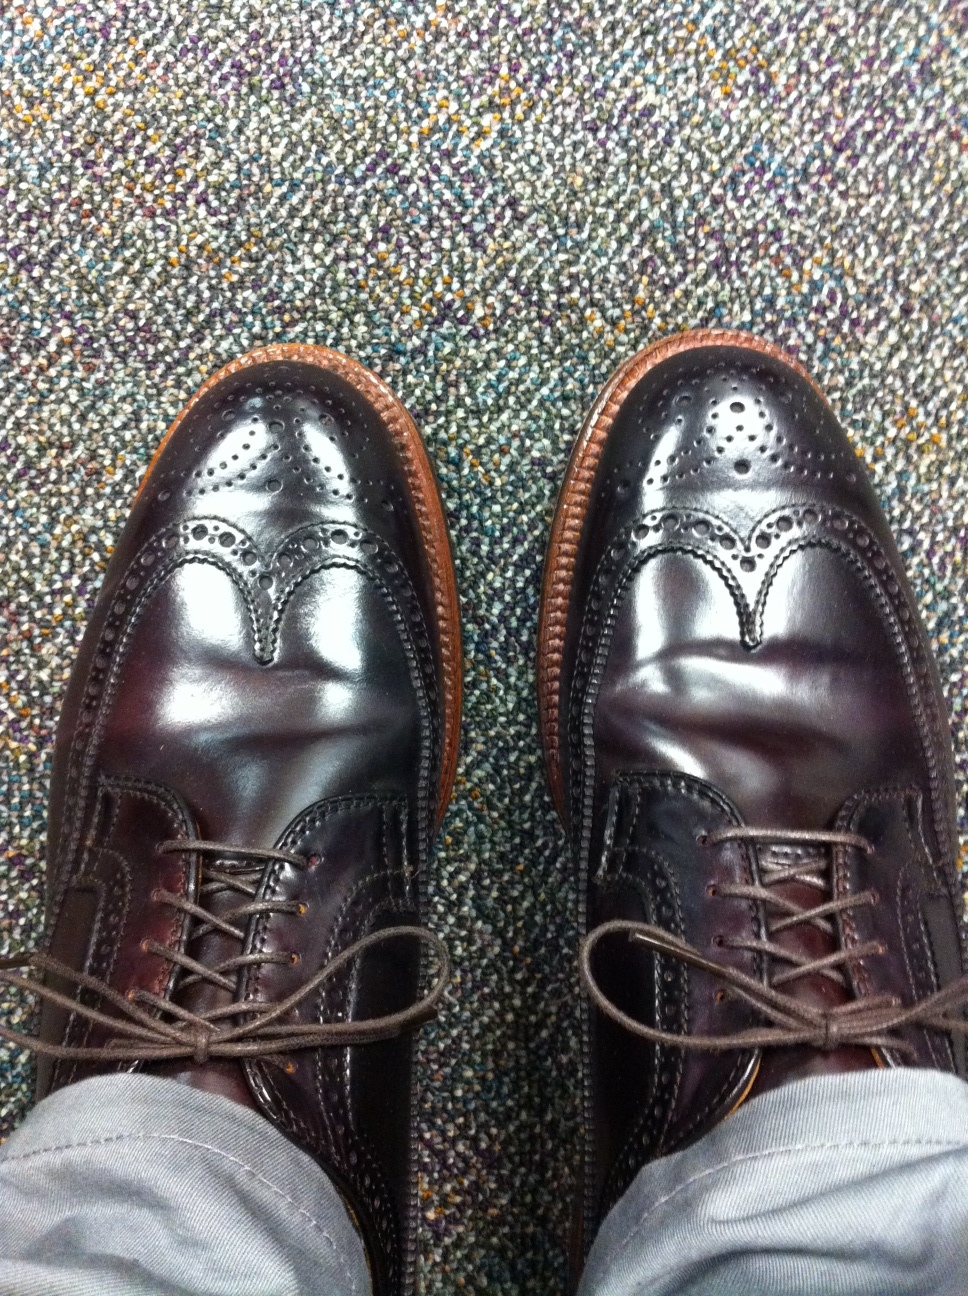 Where To Buy Alden Shoes In Boston